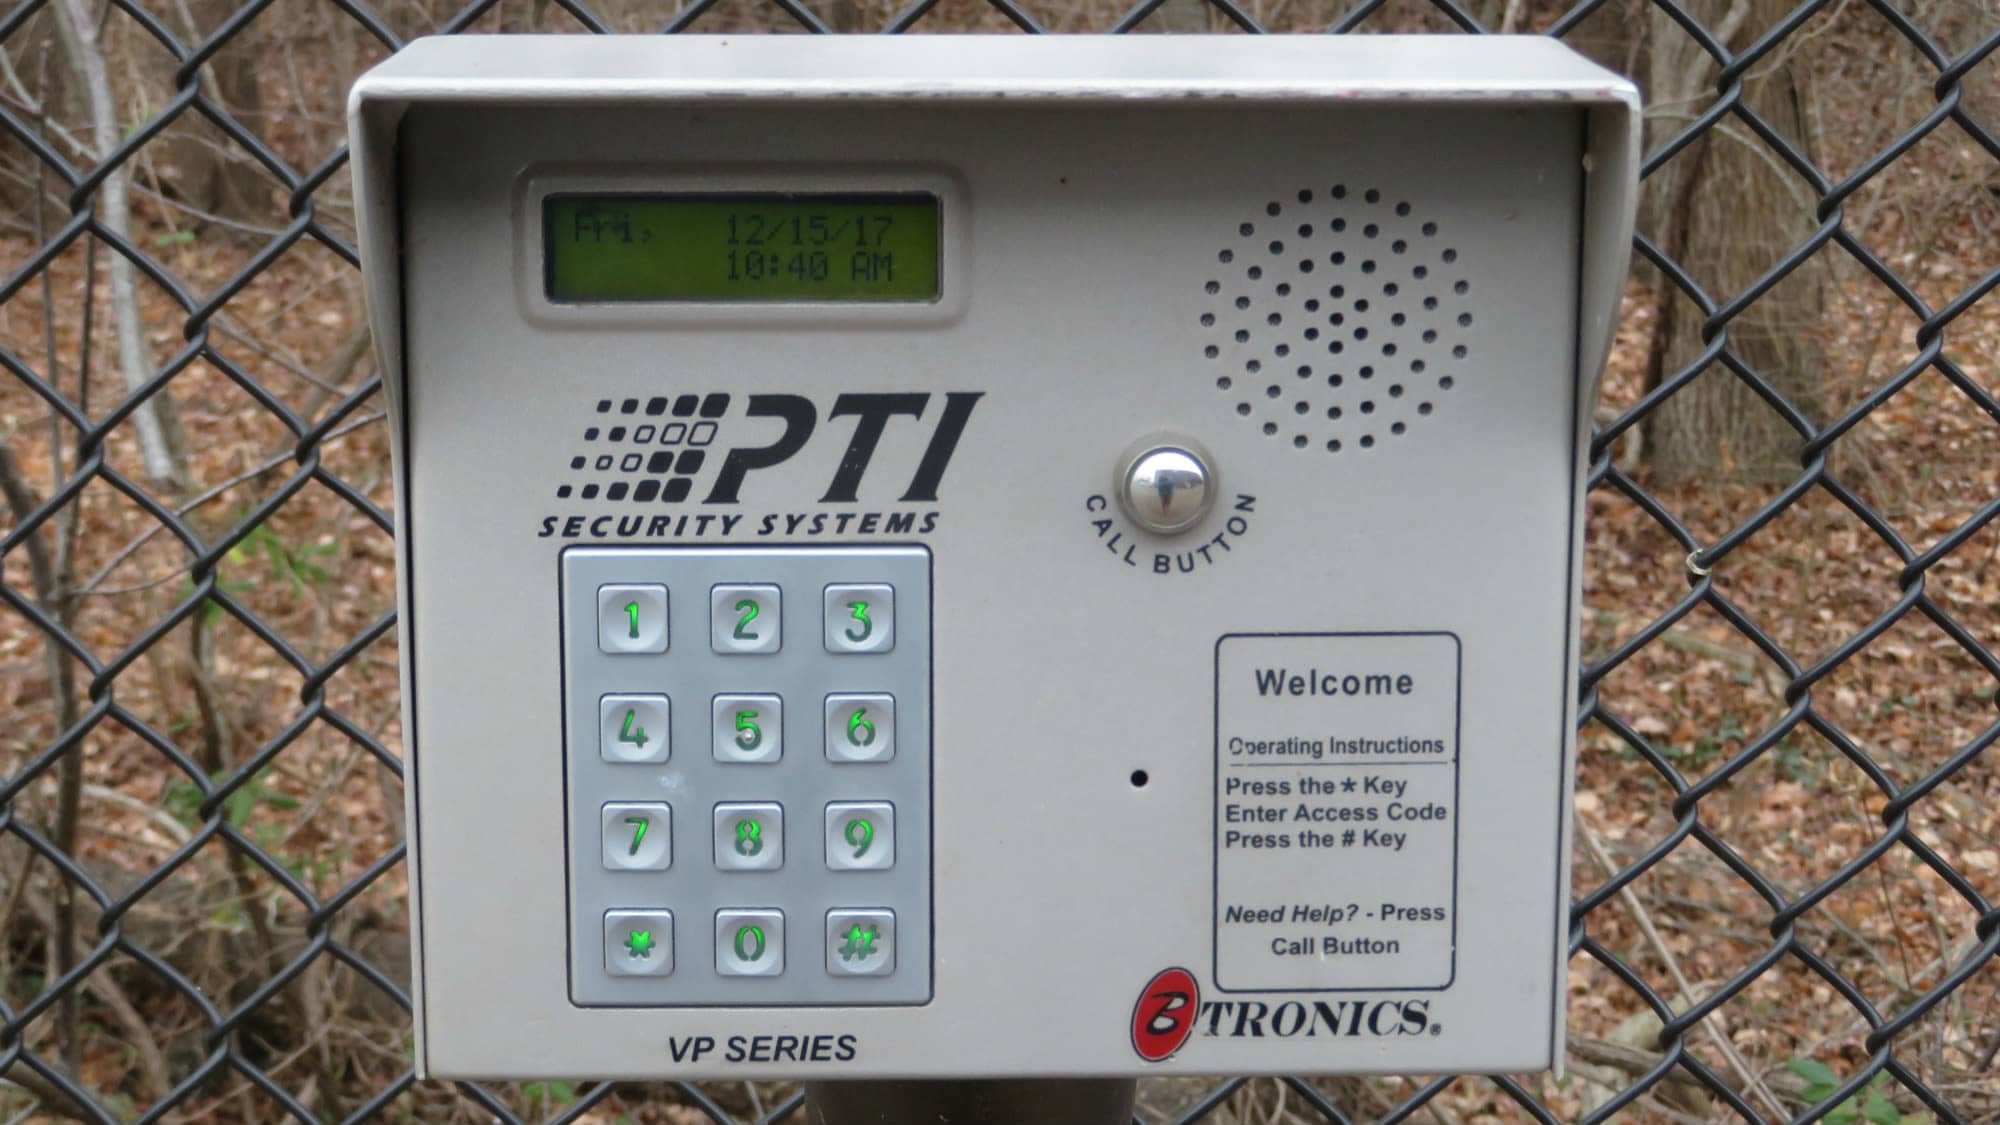 Keypad for the gate at Self Storage Plus in Gambrills, MD